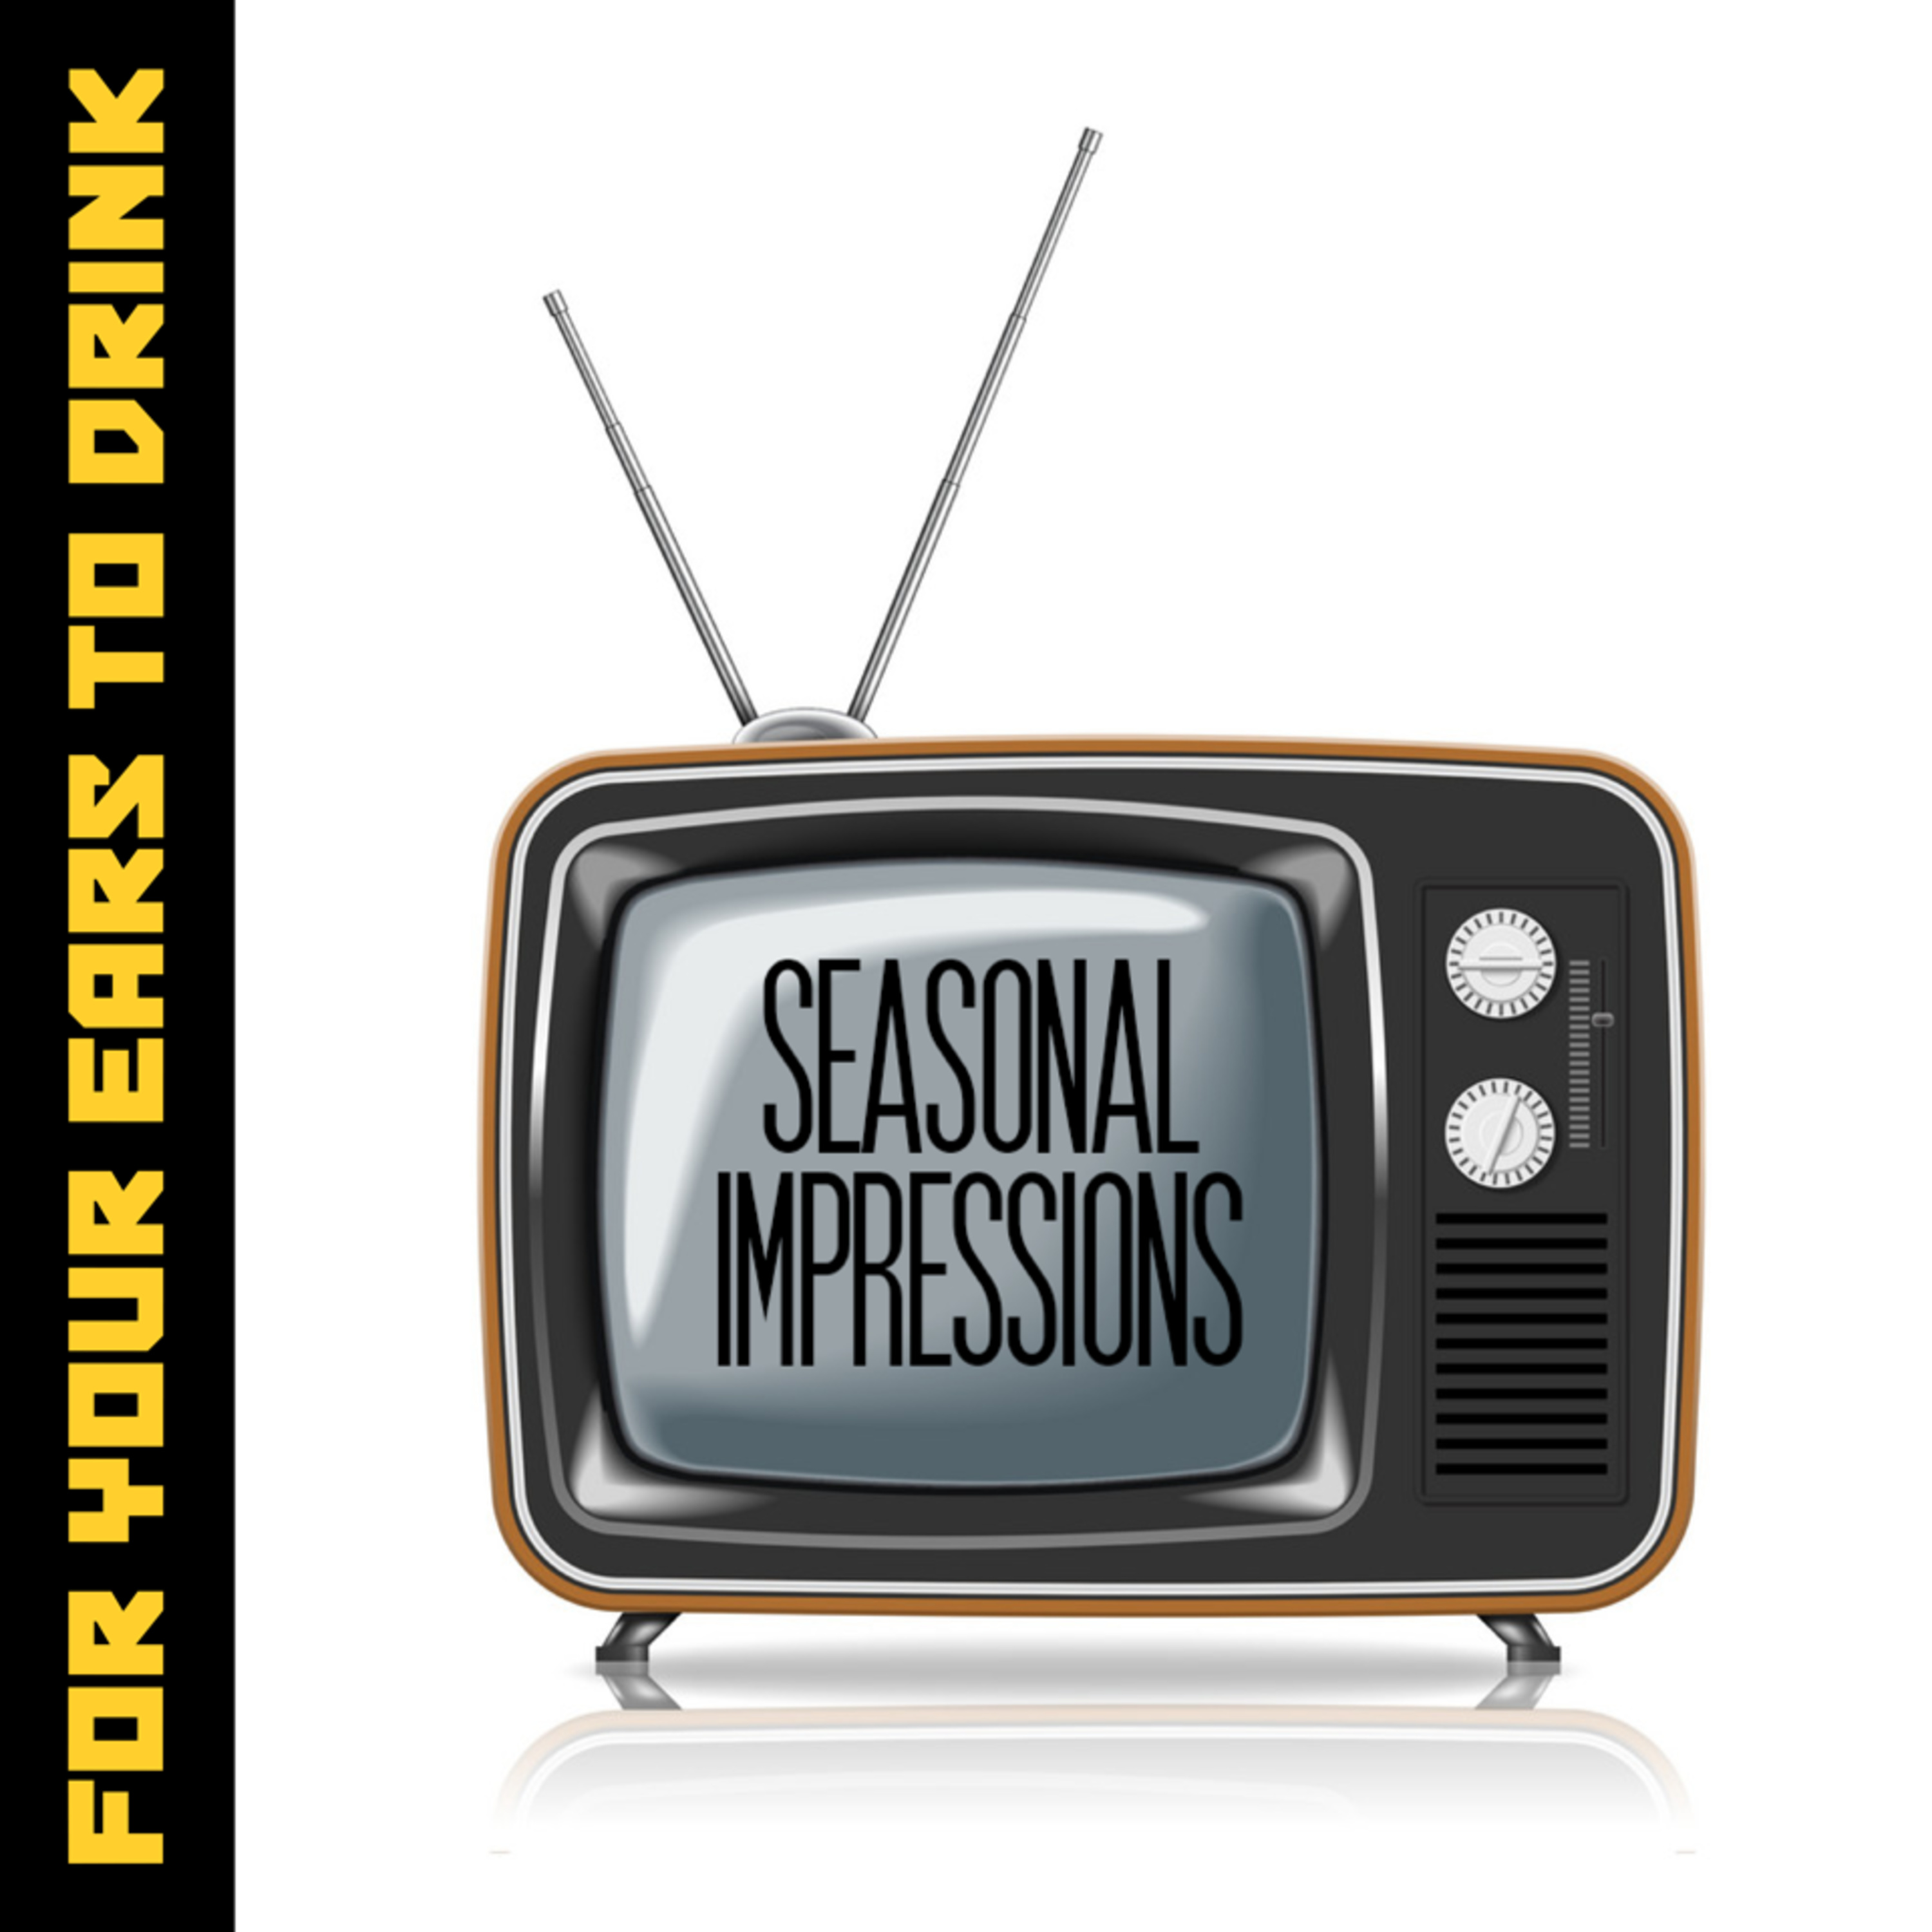 Seasonal Impressions - Episode 8: Game Of Thrones Season 1 - The North Remembers